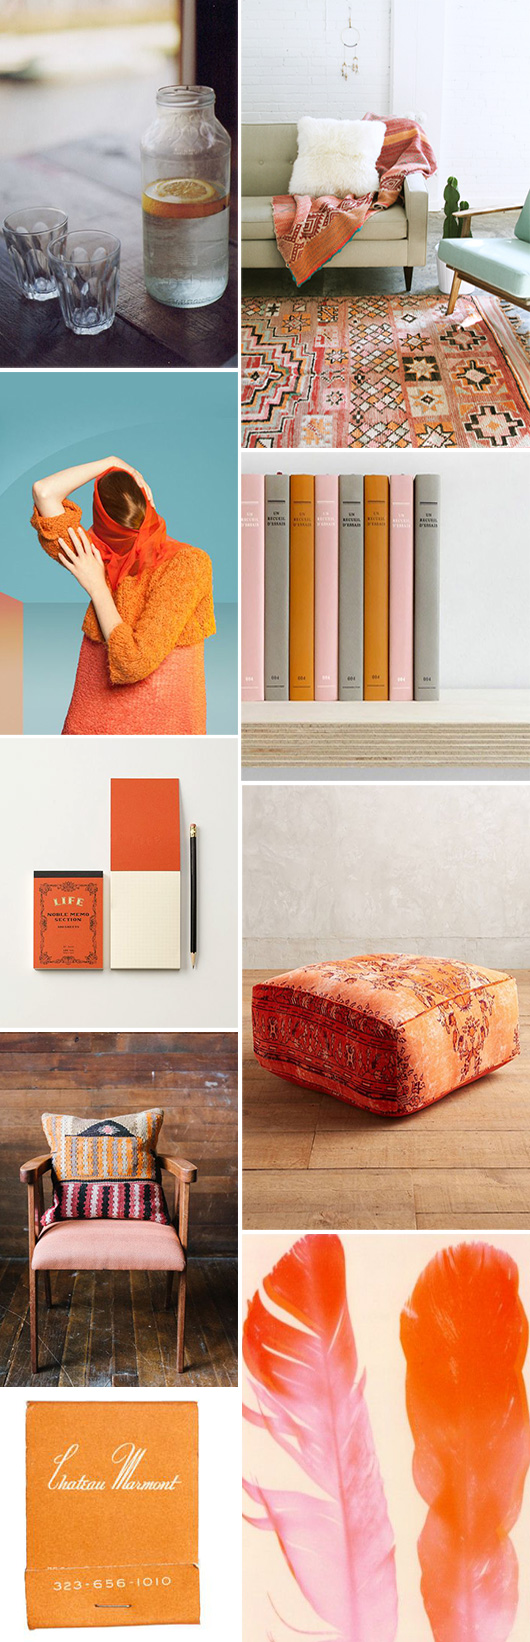 home decor with pops of orange / sfgirlbybay